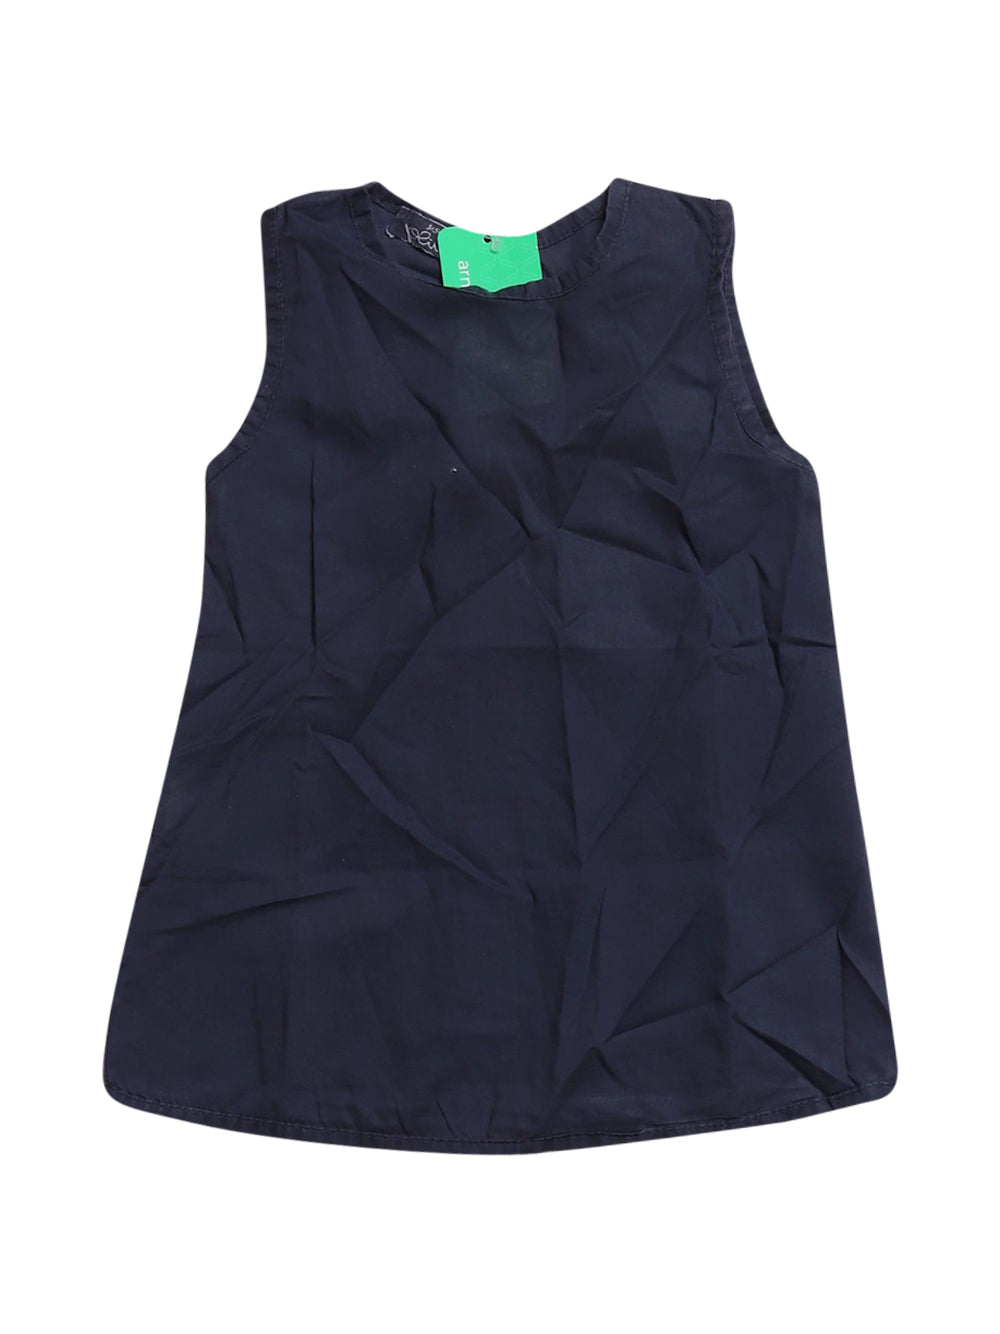 Front photo of Preloved Olive Blue Girl's sleeveless top - size 12-18 mths